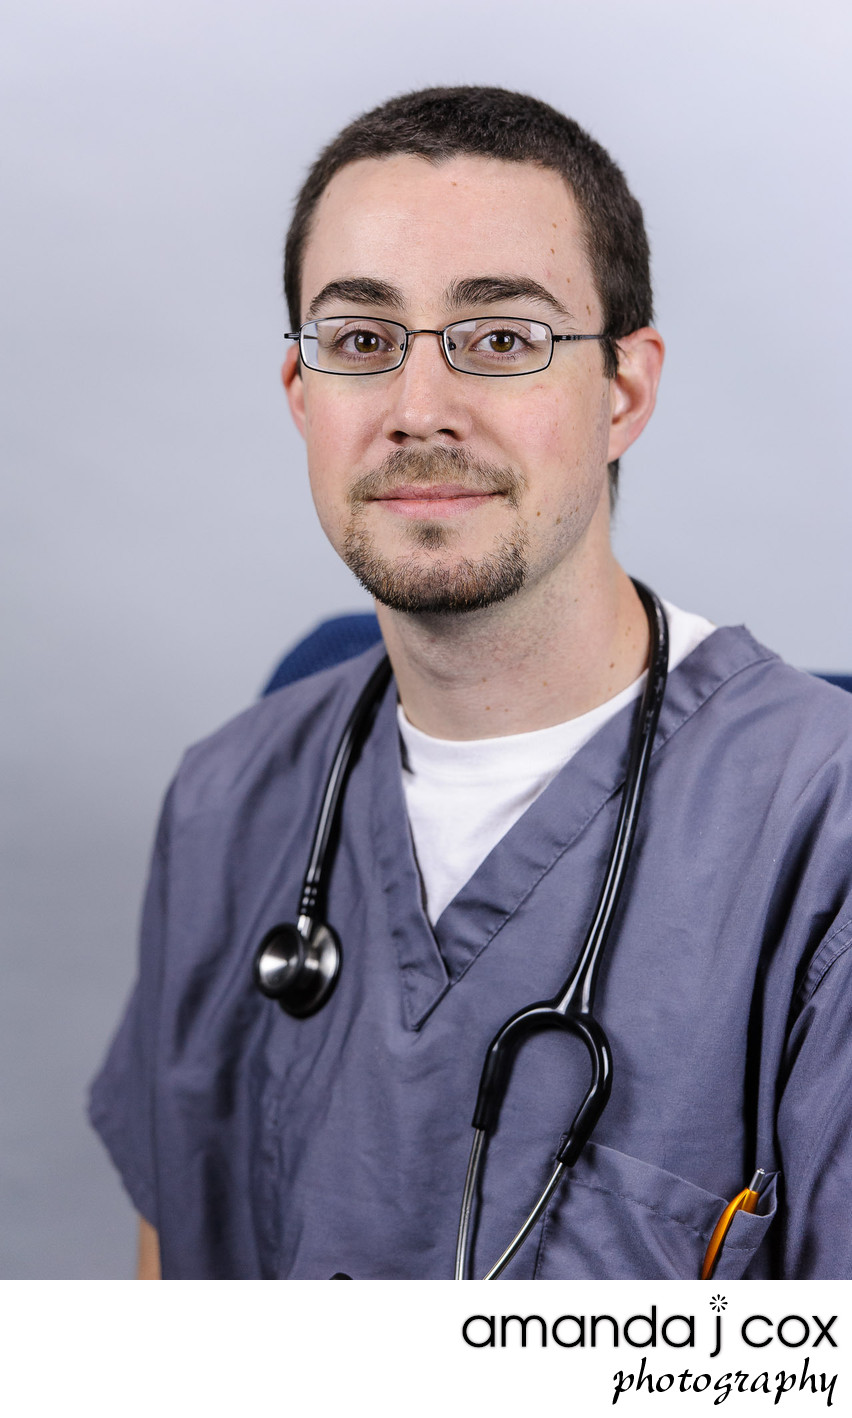 Doctor Headshots and Medical Professional Portraits